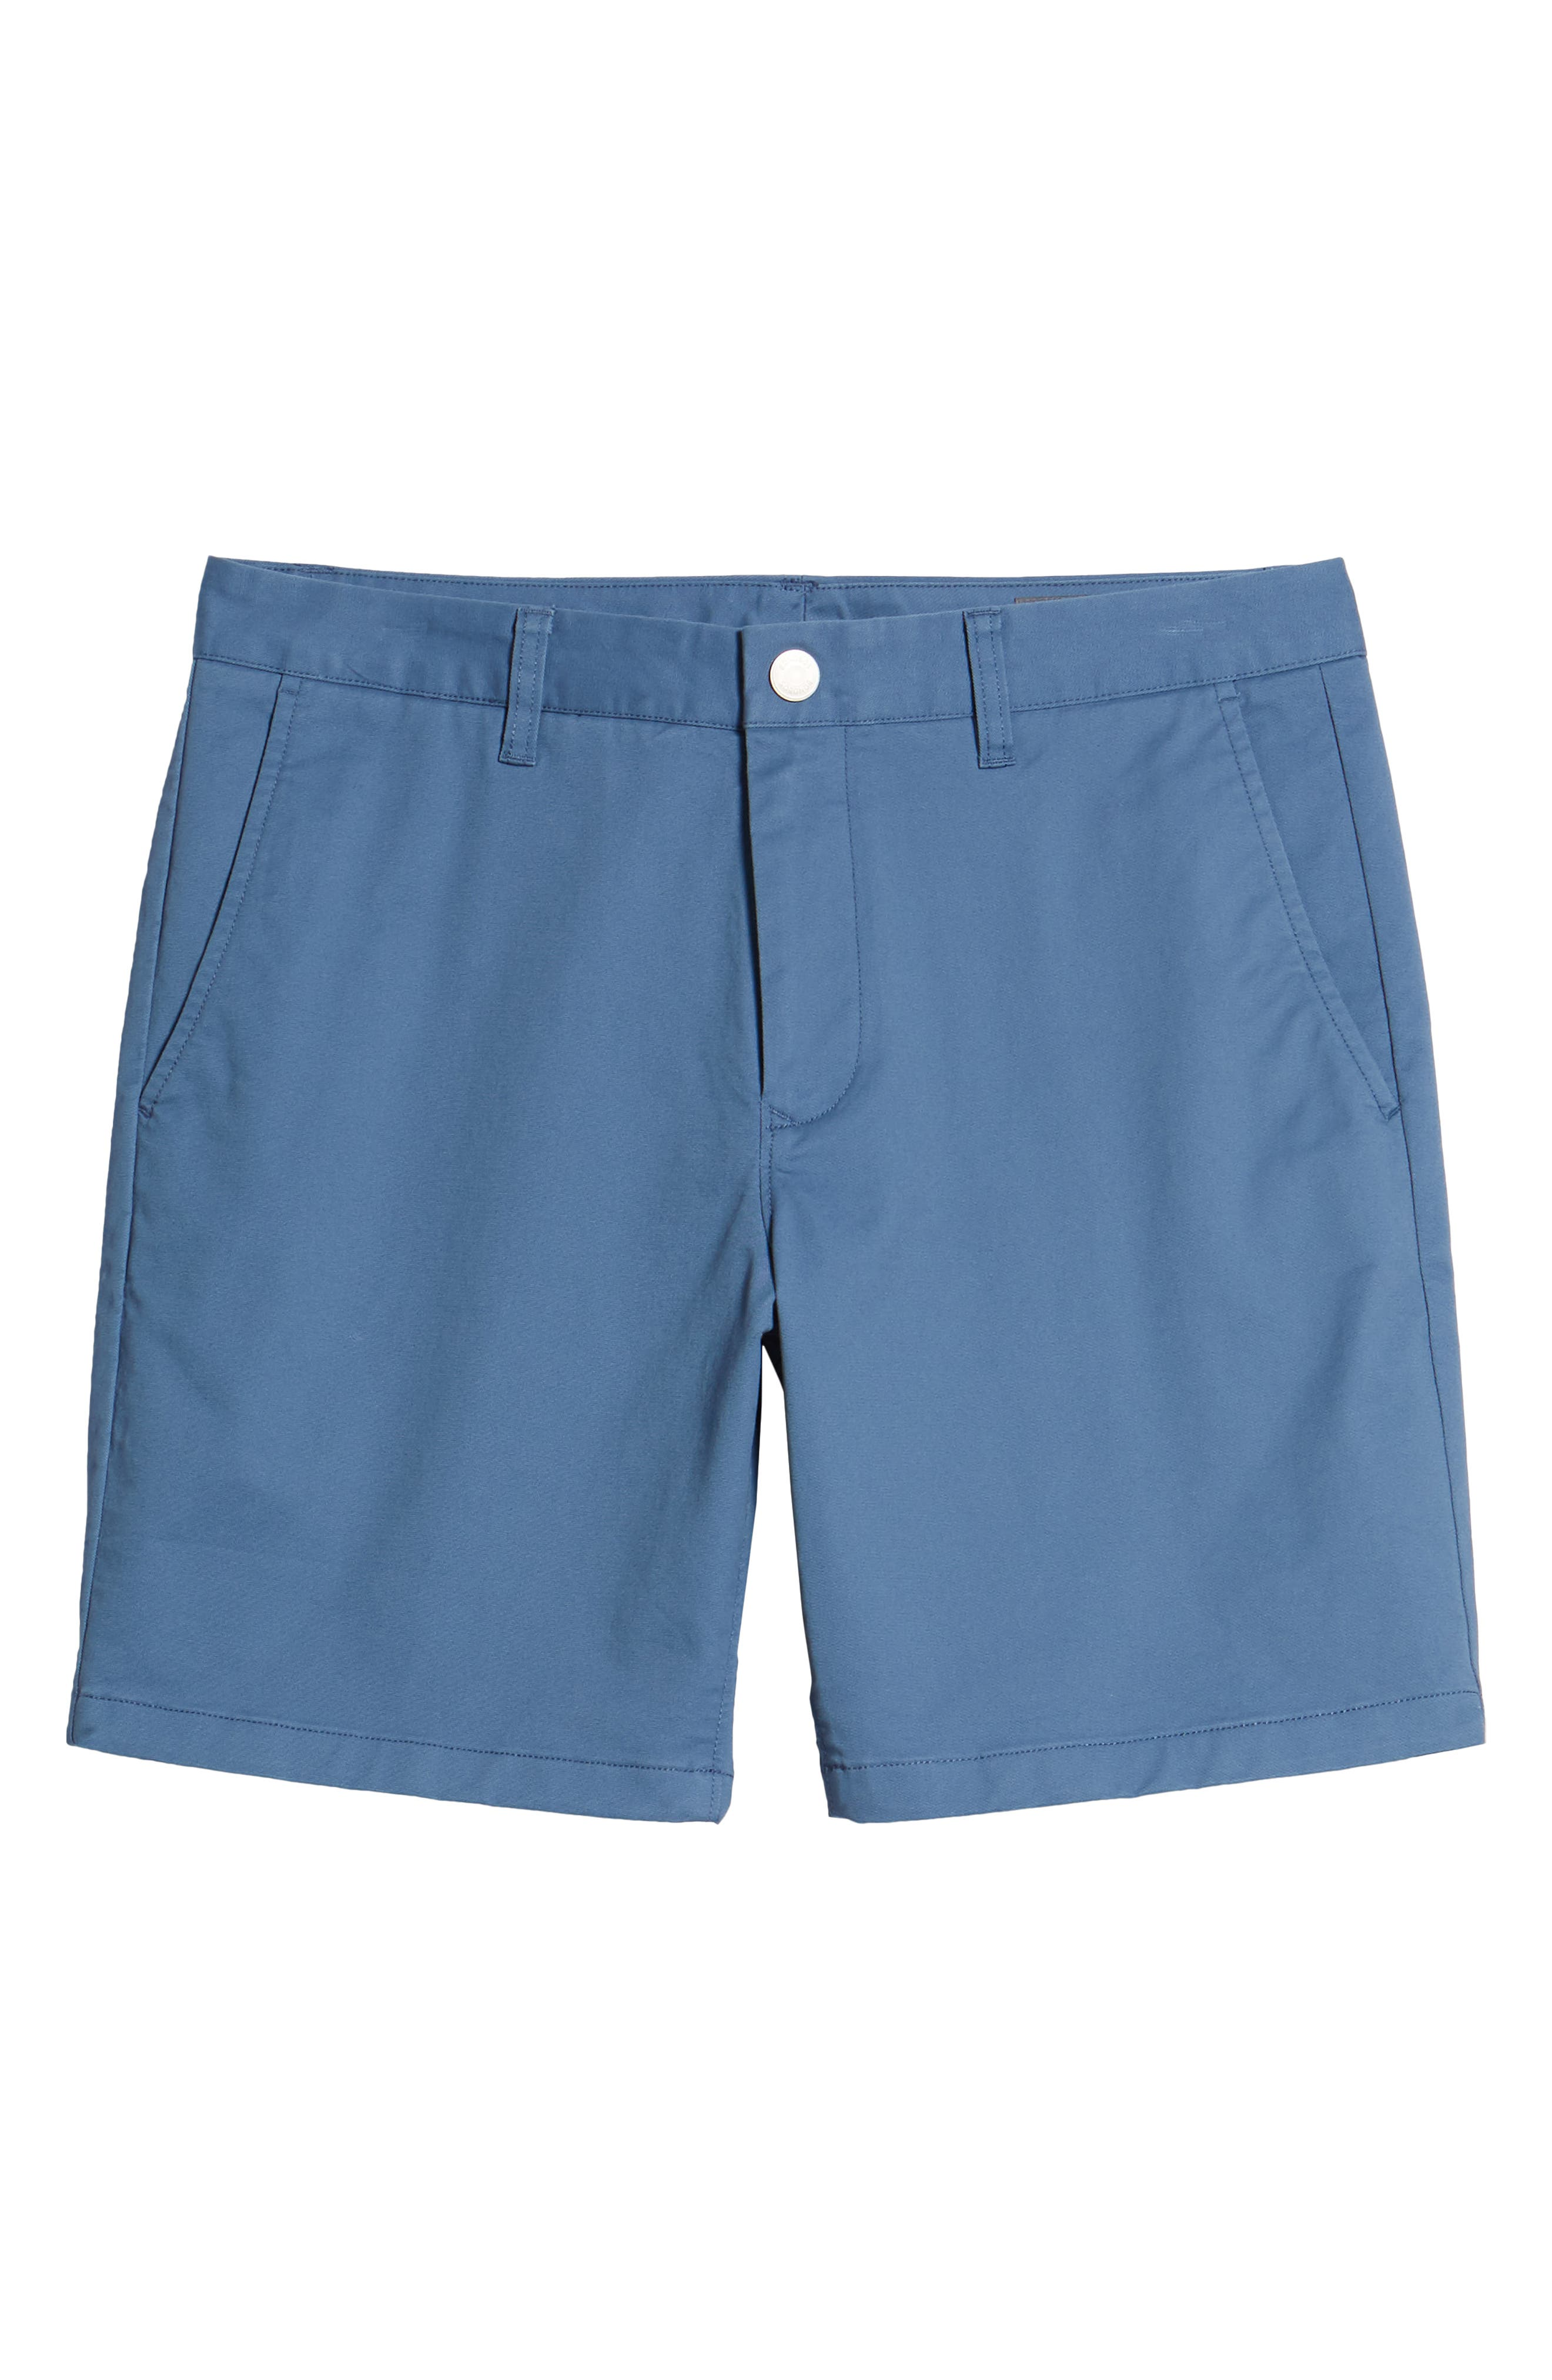 Stretch Chino 7-Inch Shorts,                             Alternate thumbnail 70, color,